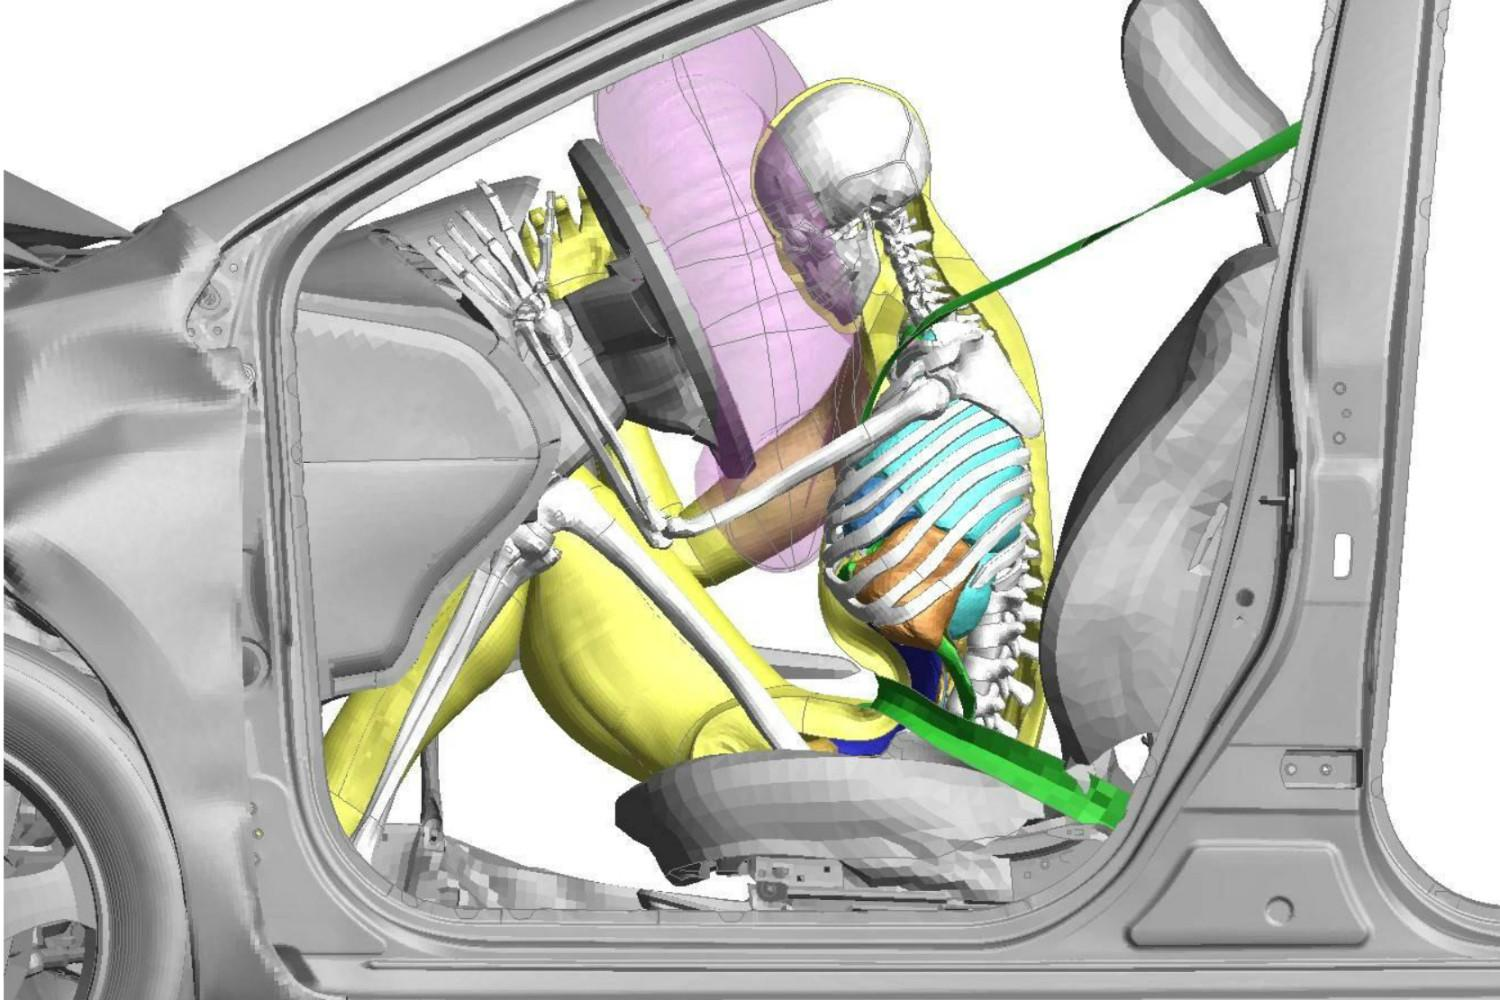 Toyota adds child models to its virtual crash dummy software